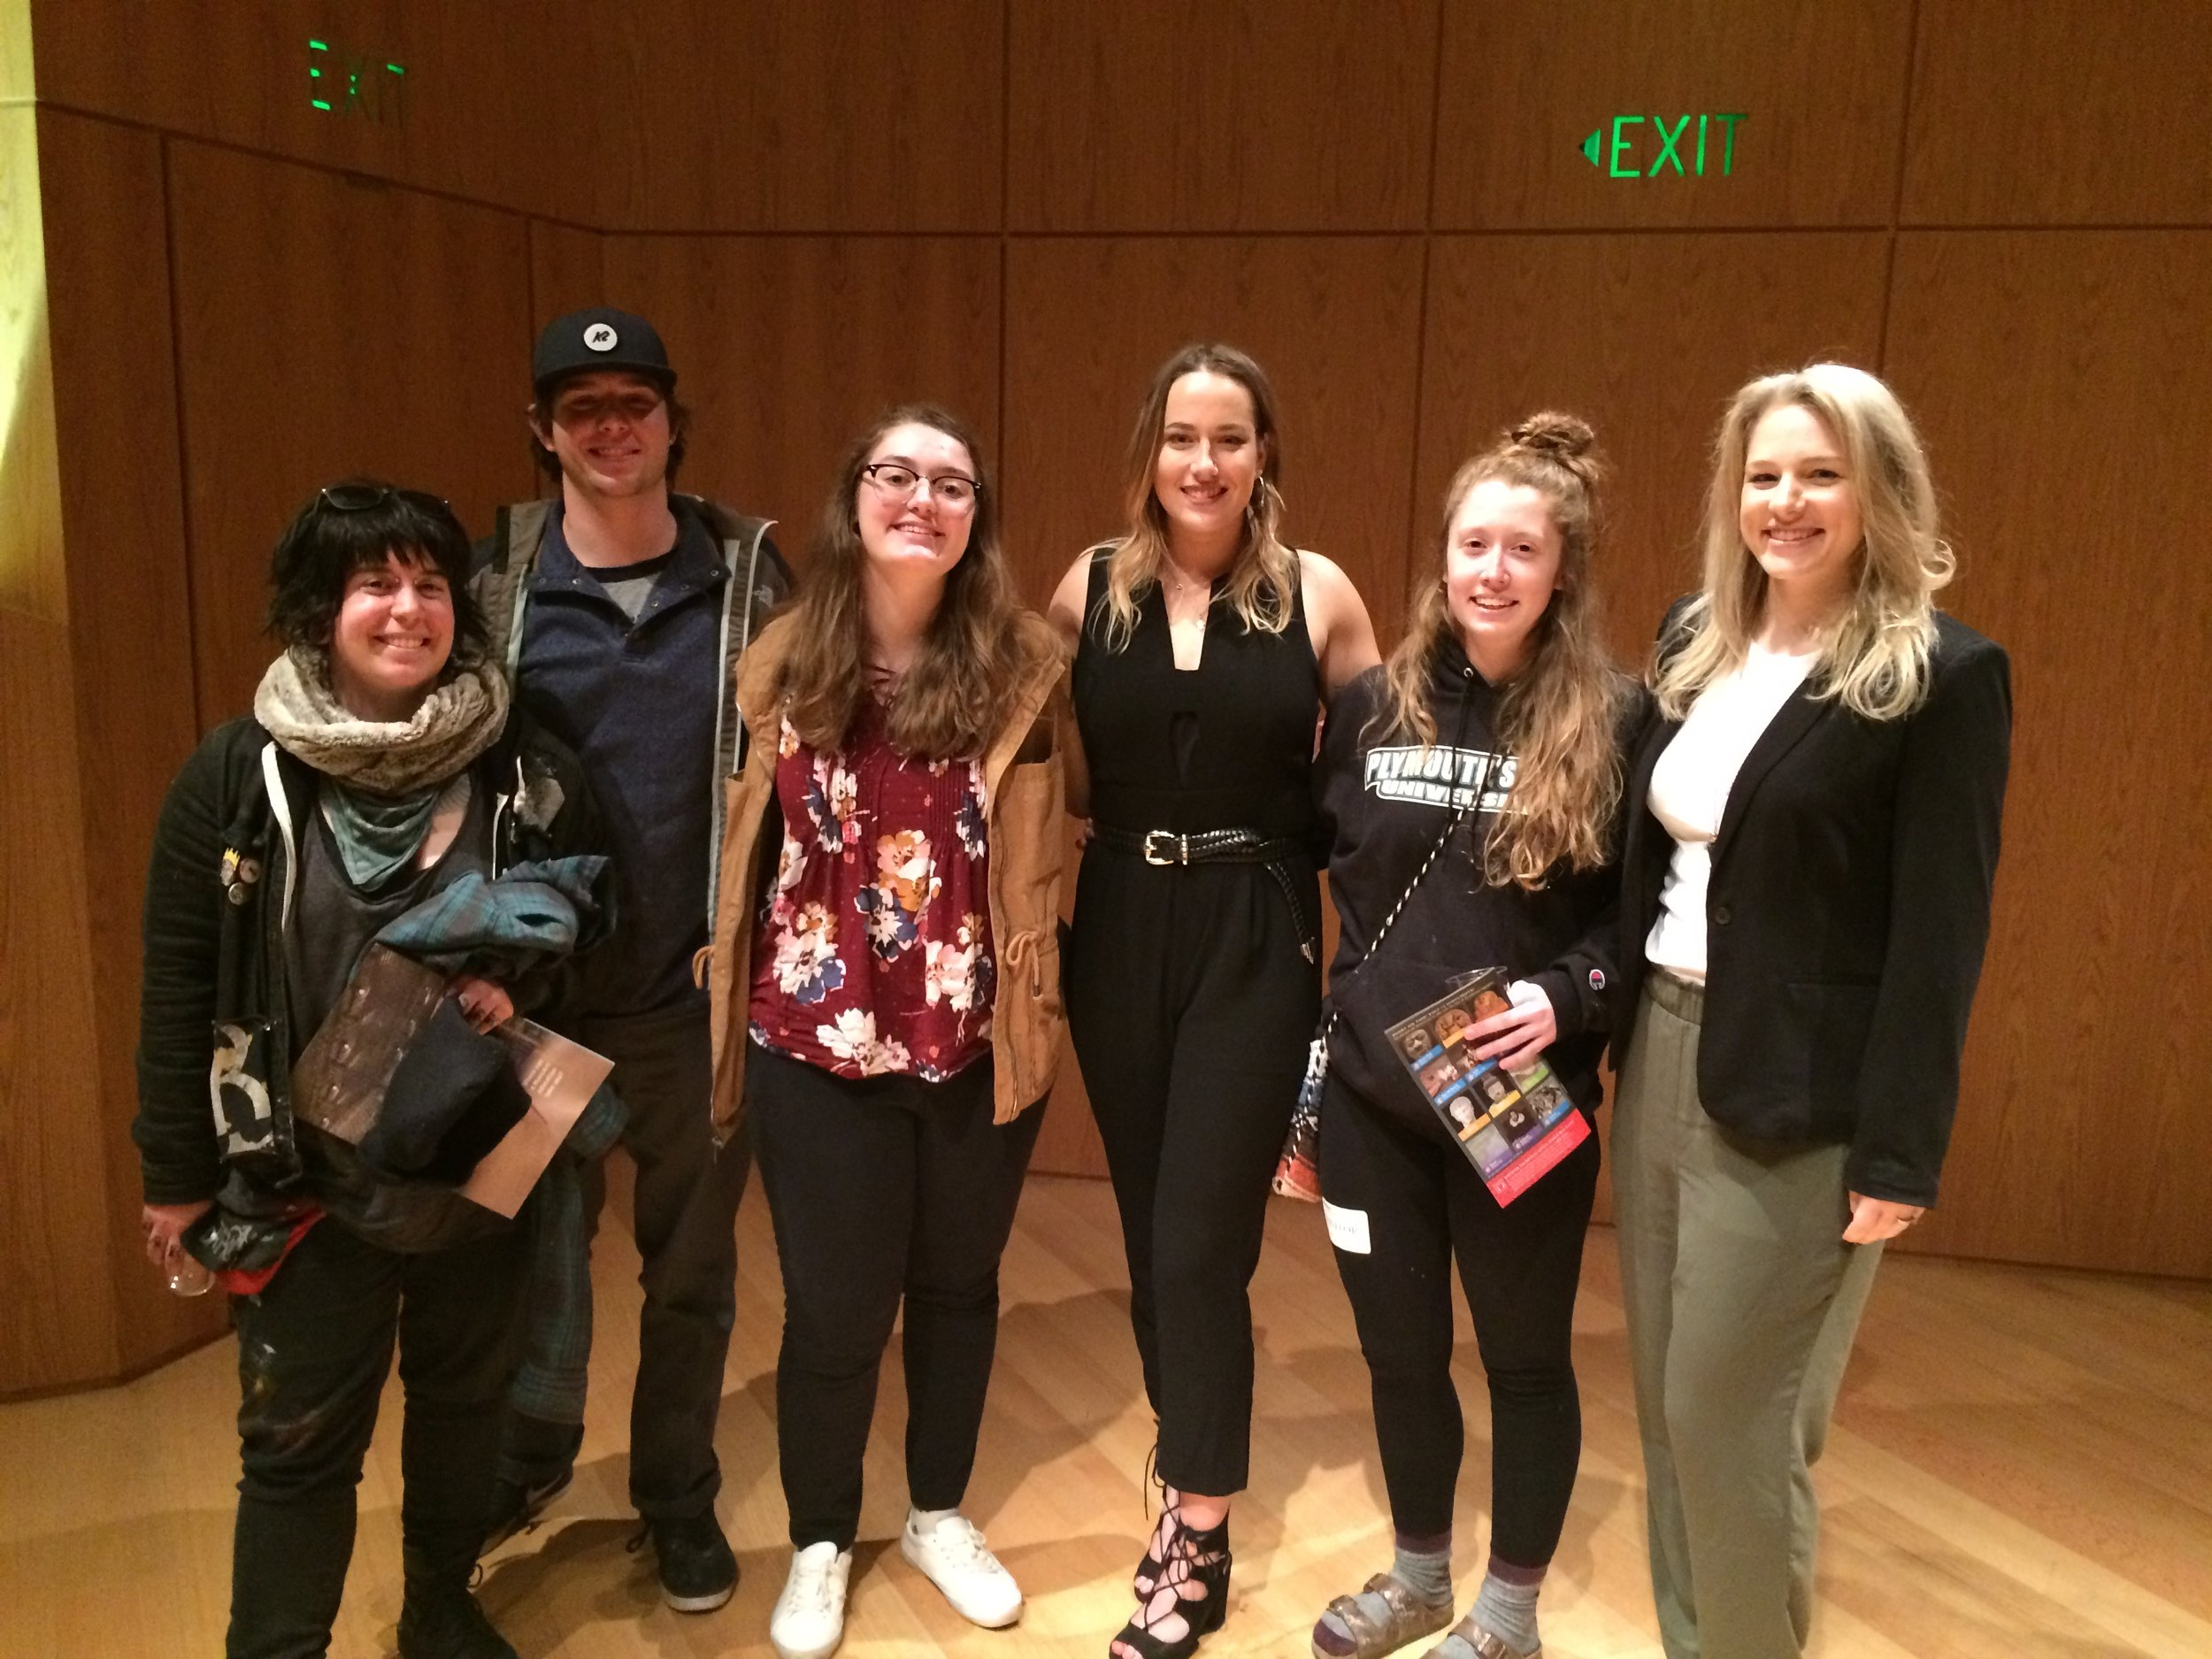 BFA Seniors at the MFA. From left to right: Julie Mosso, Rob Hansen, Rae Bujeaud, Caity O'Leary, Felicia Wells, Sarah Parrish.